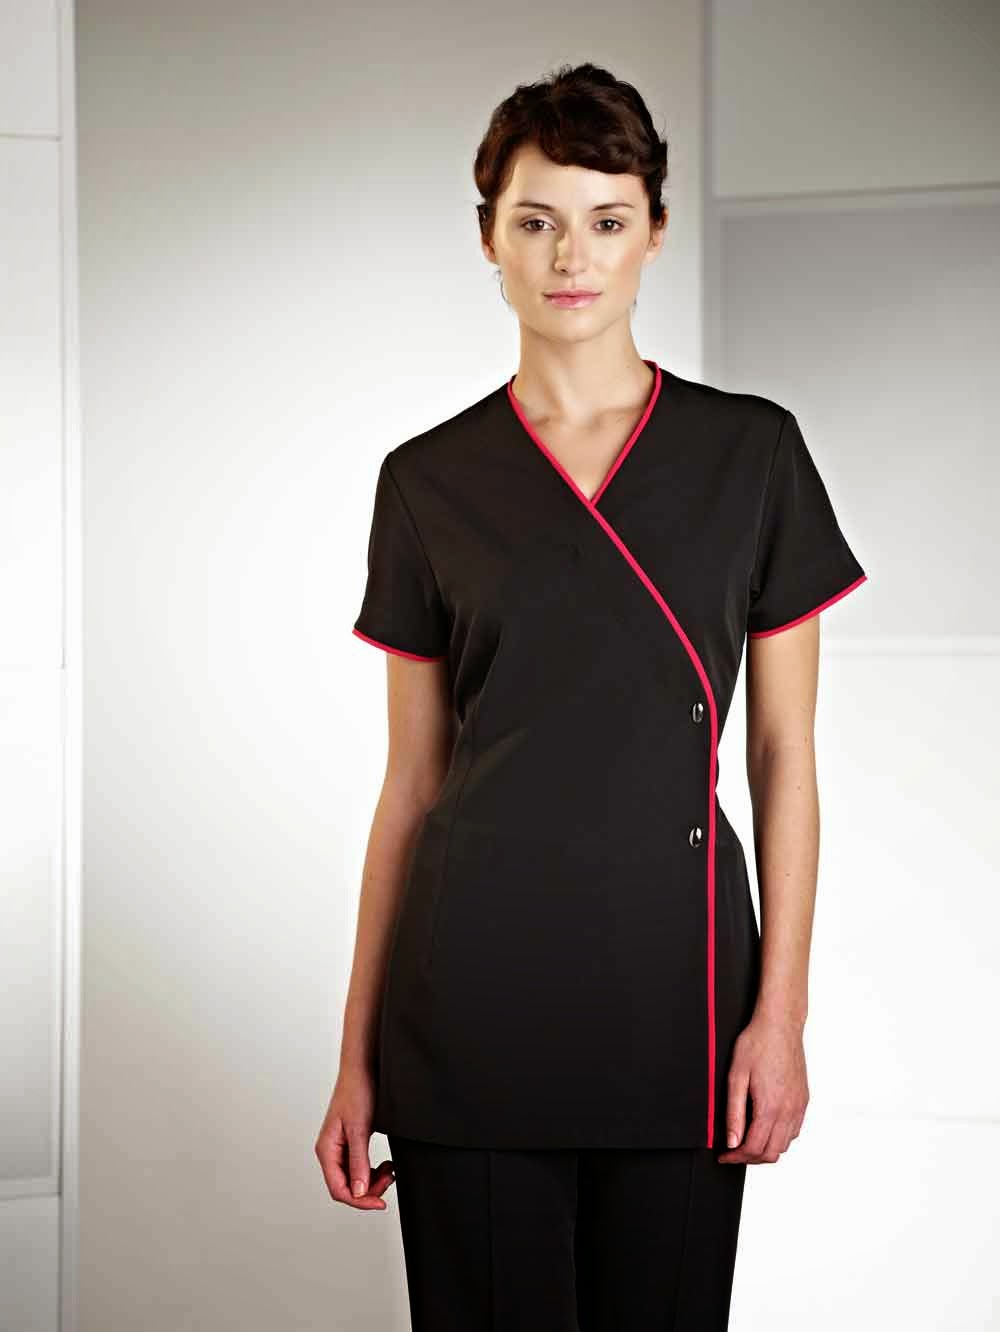 Beautician uniforms for Uniform spa salon